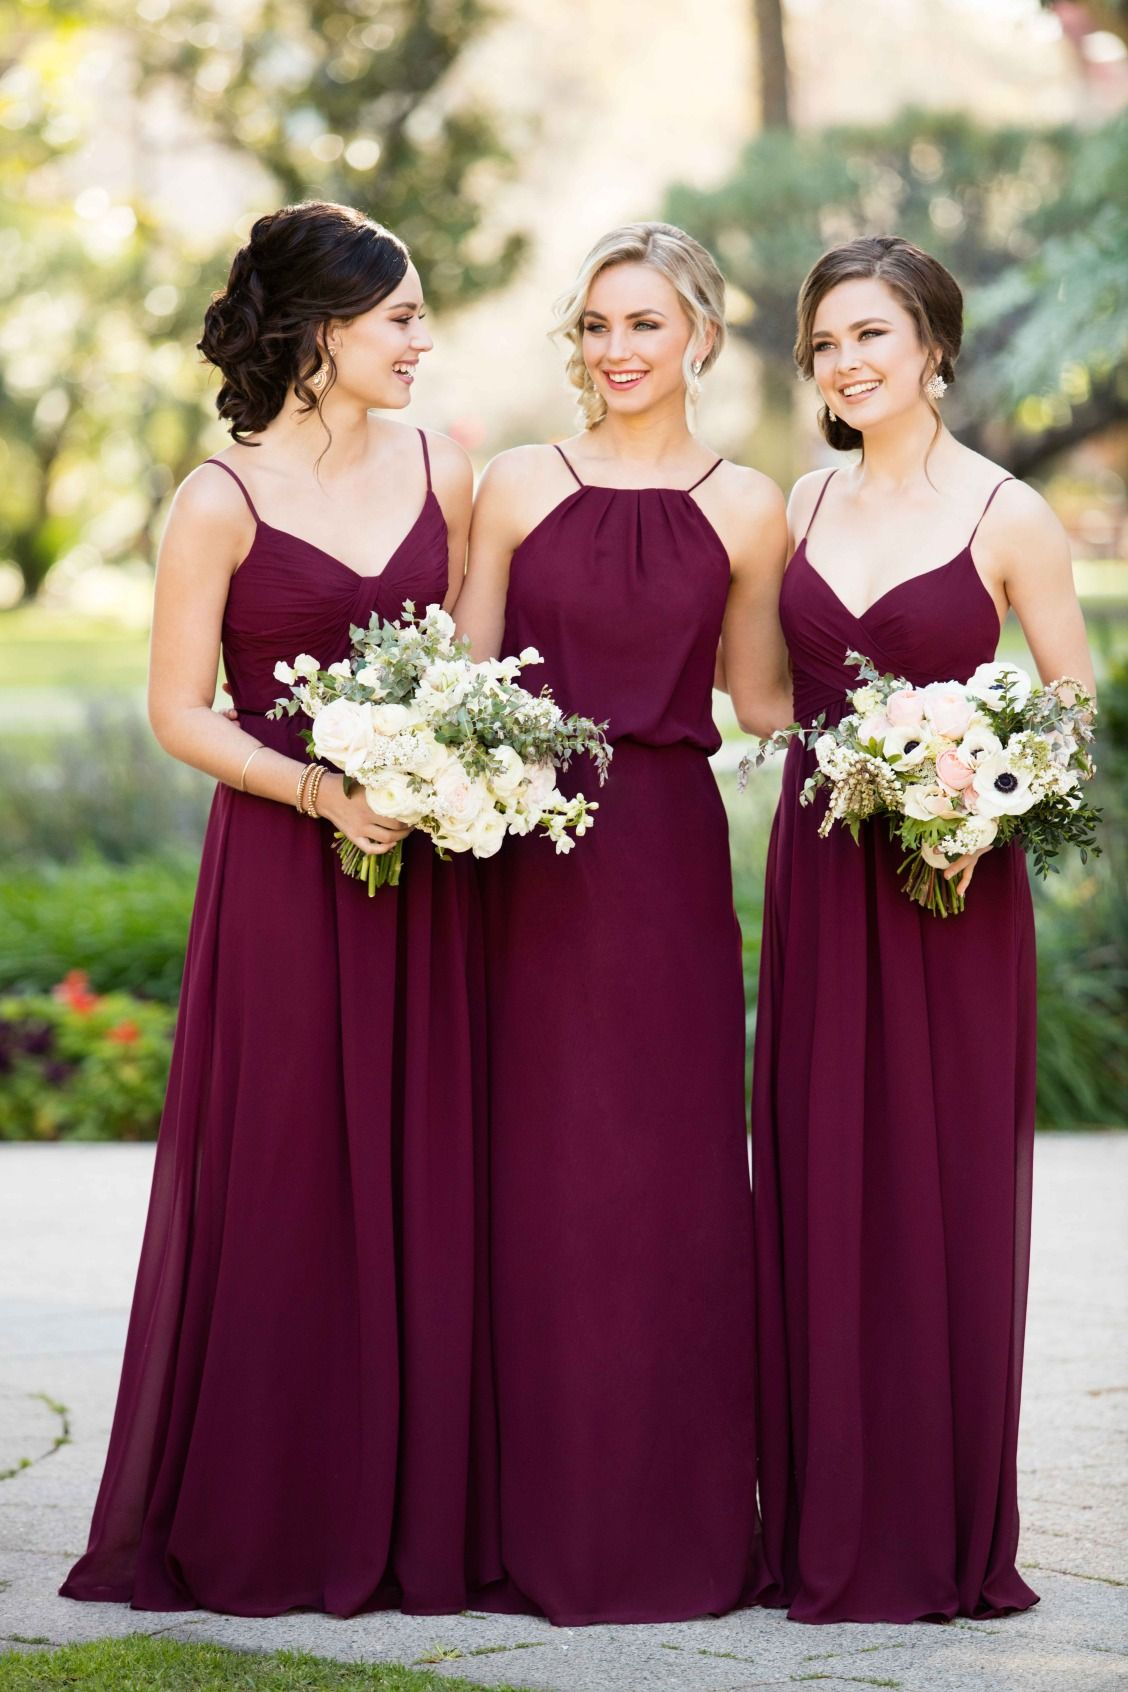 Designer bridesmaid dresses bridal parties wedding and weddings burgundy bridesmaids dress for a mix and match bridal party ombrellifo Gallery